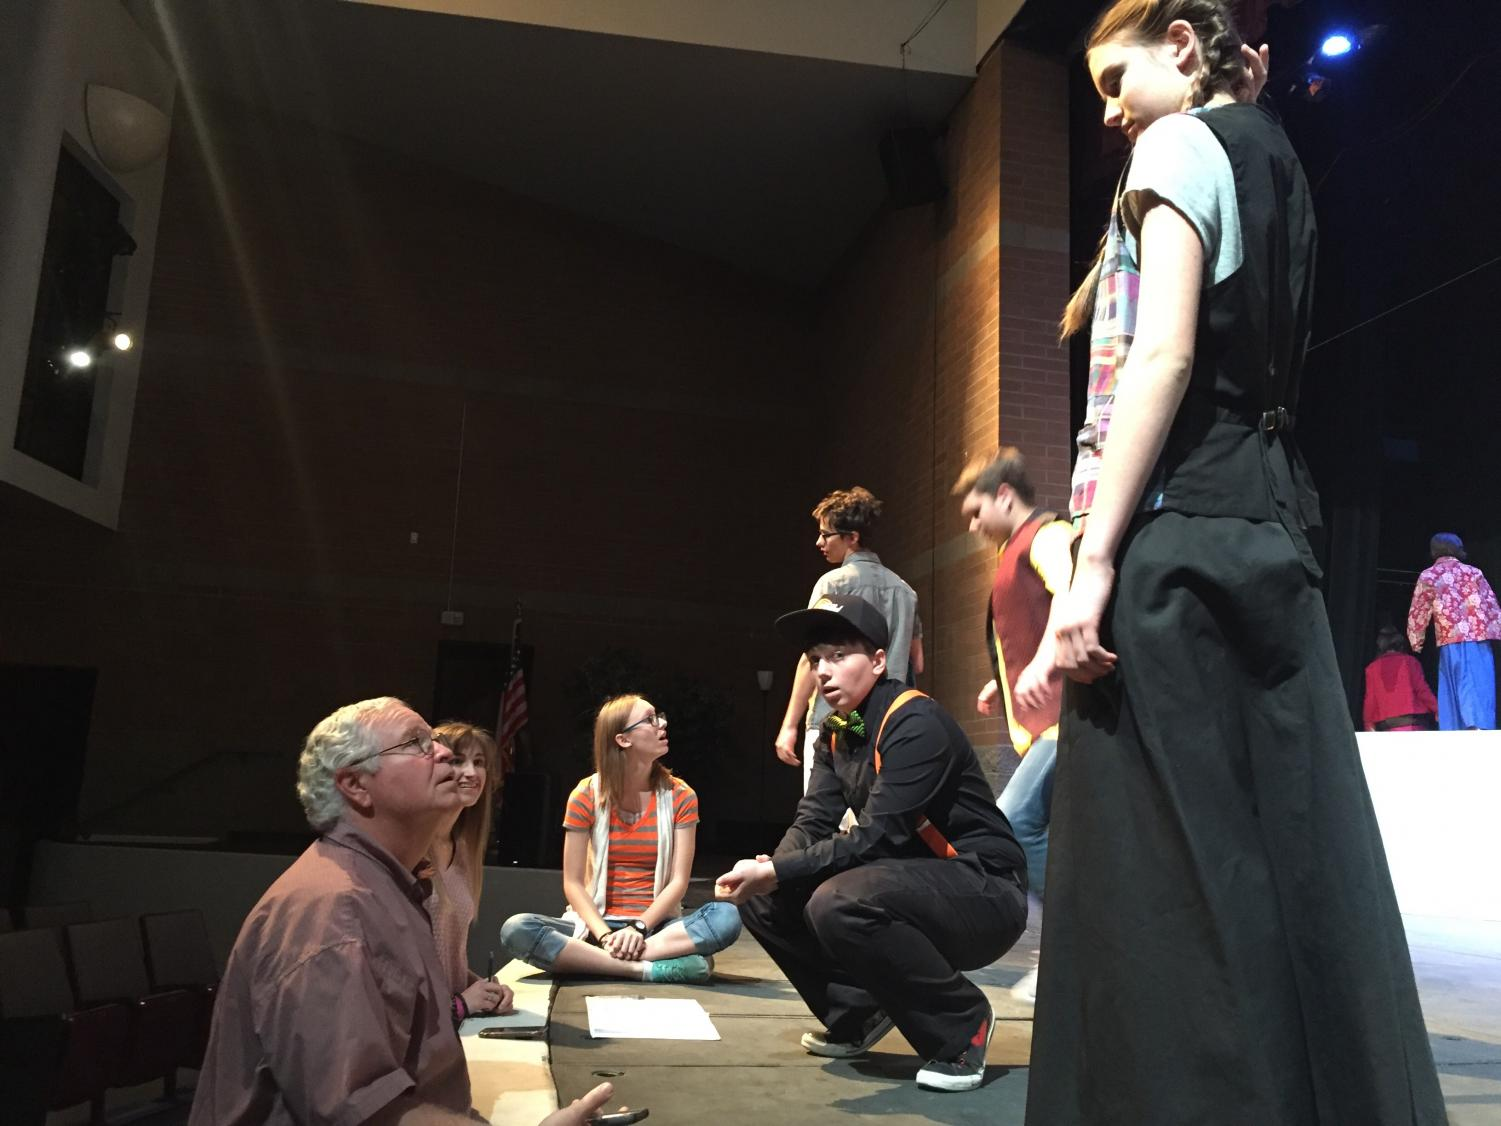 Theatre teacher and director, Mr. Abaroa, gives cast comments and pointers to prepare them for the show